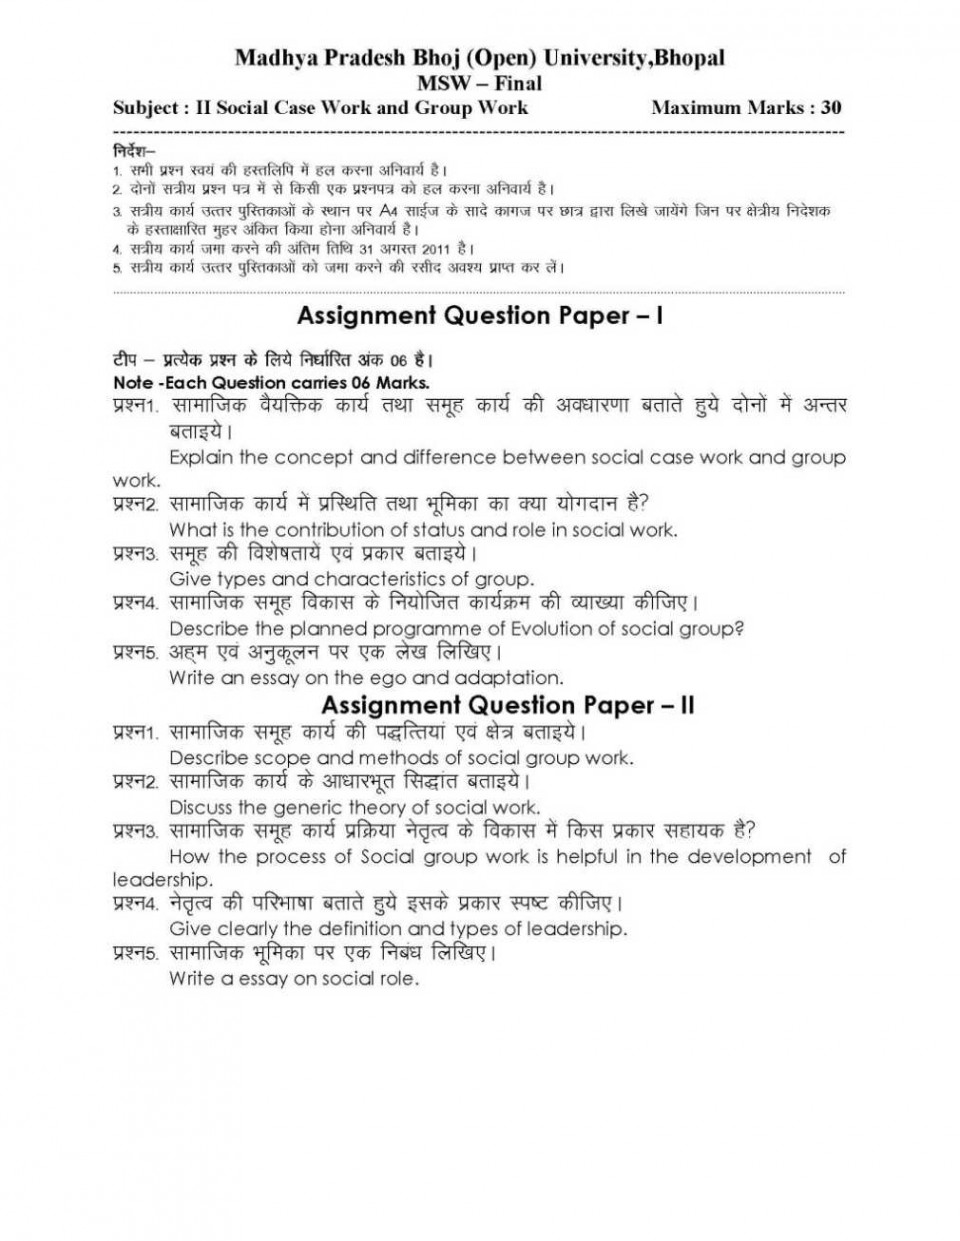 012 Bhoj University Bhopal Msw Definition Essays Surprising Essay Examples Free Love Friendship 960